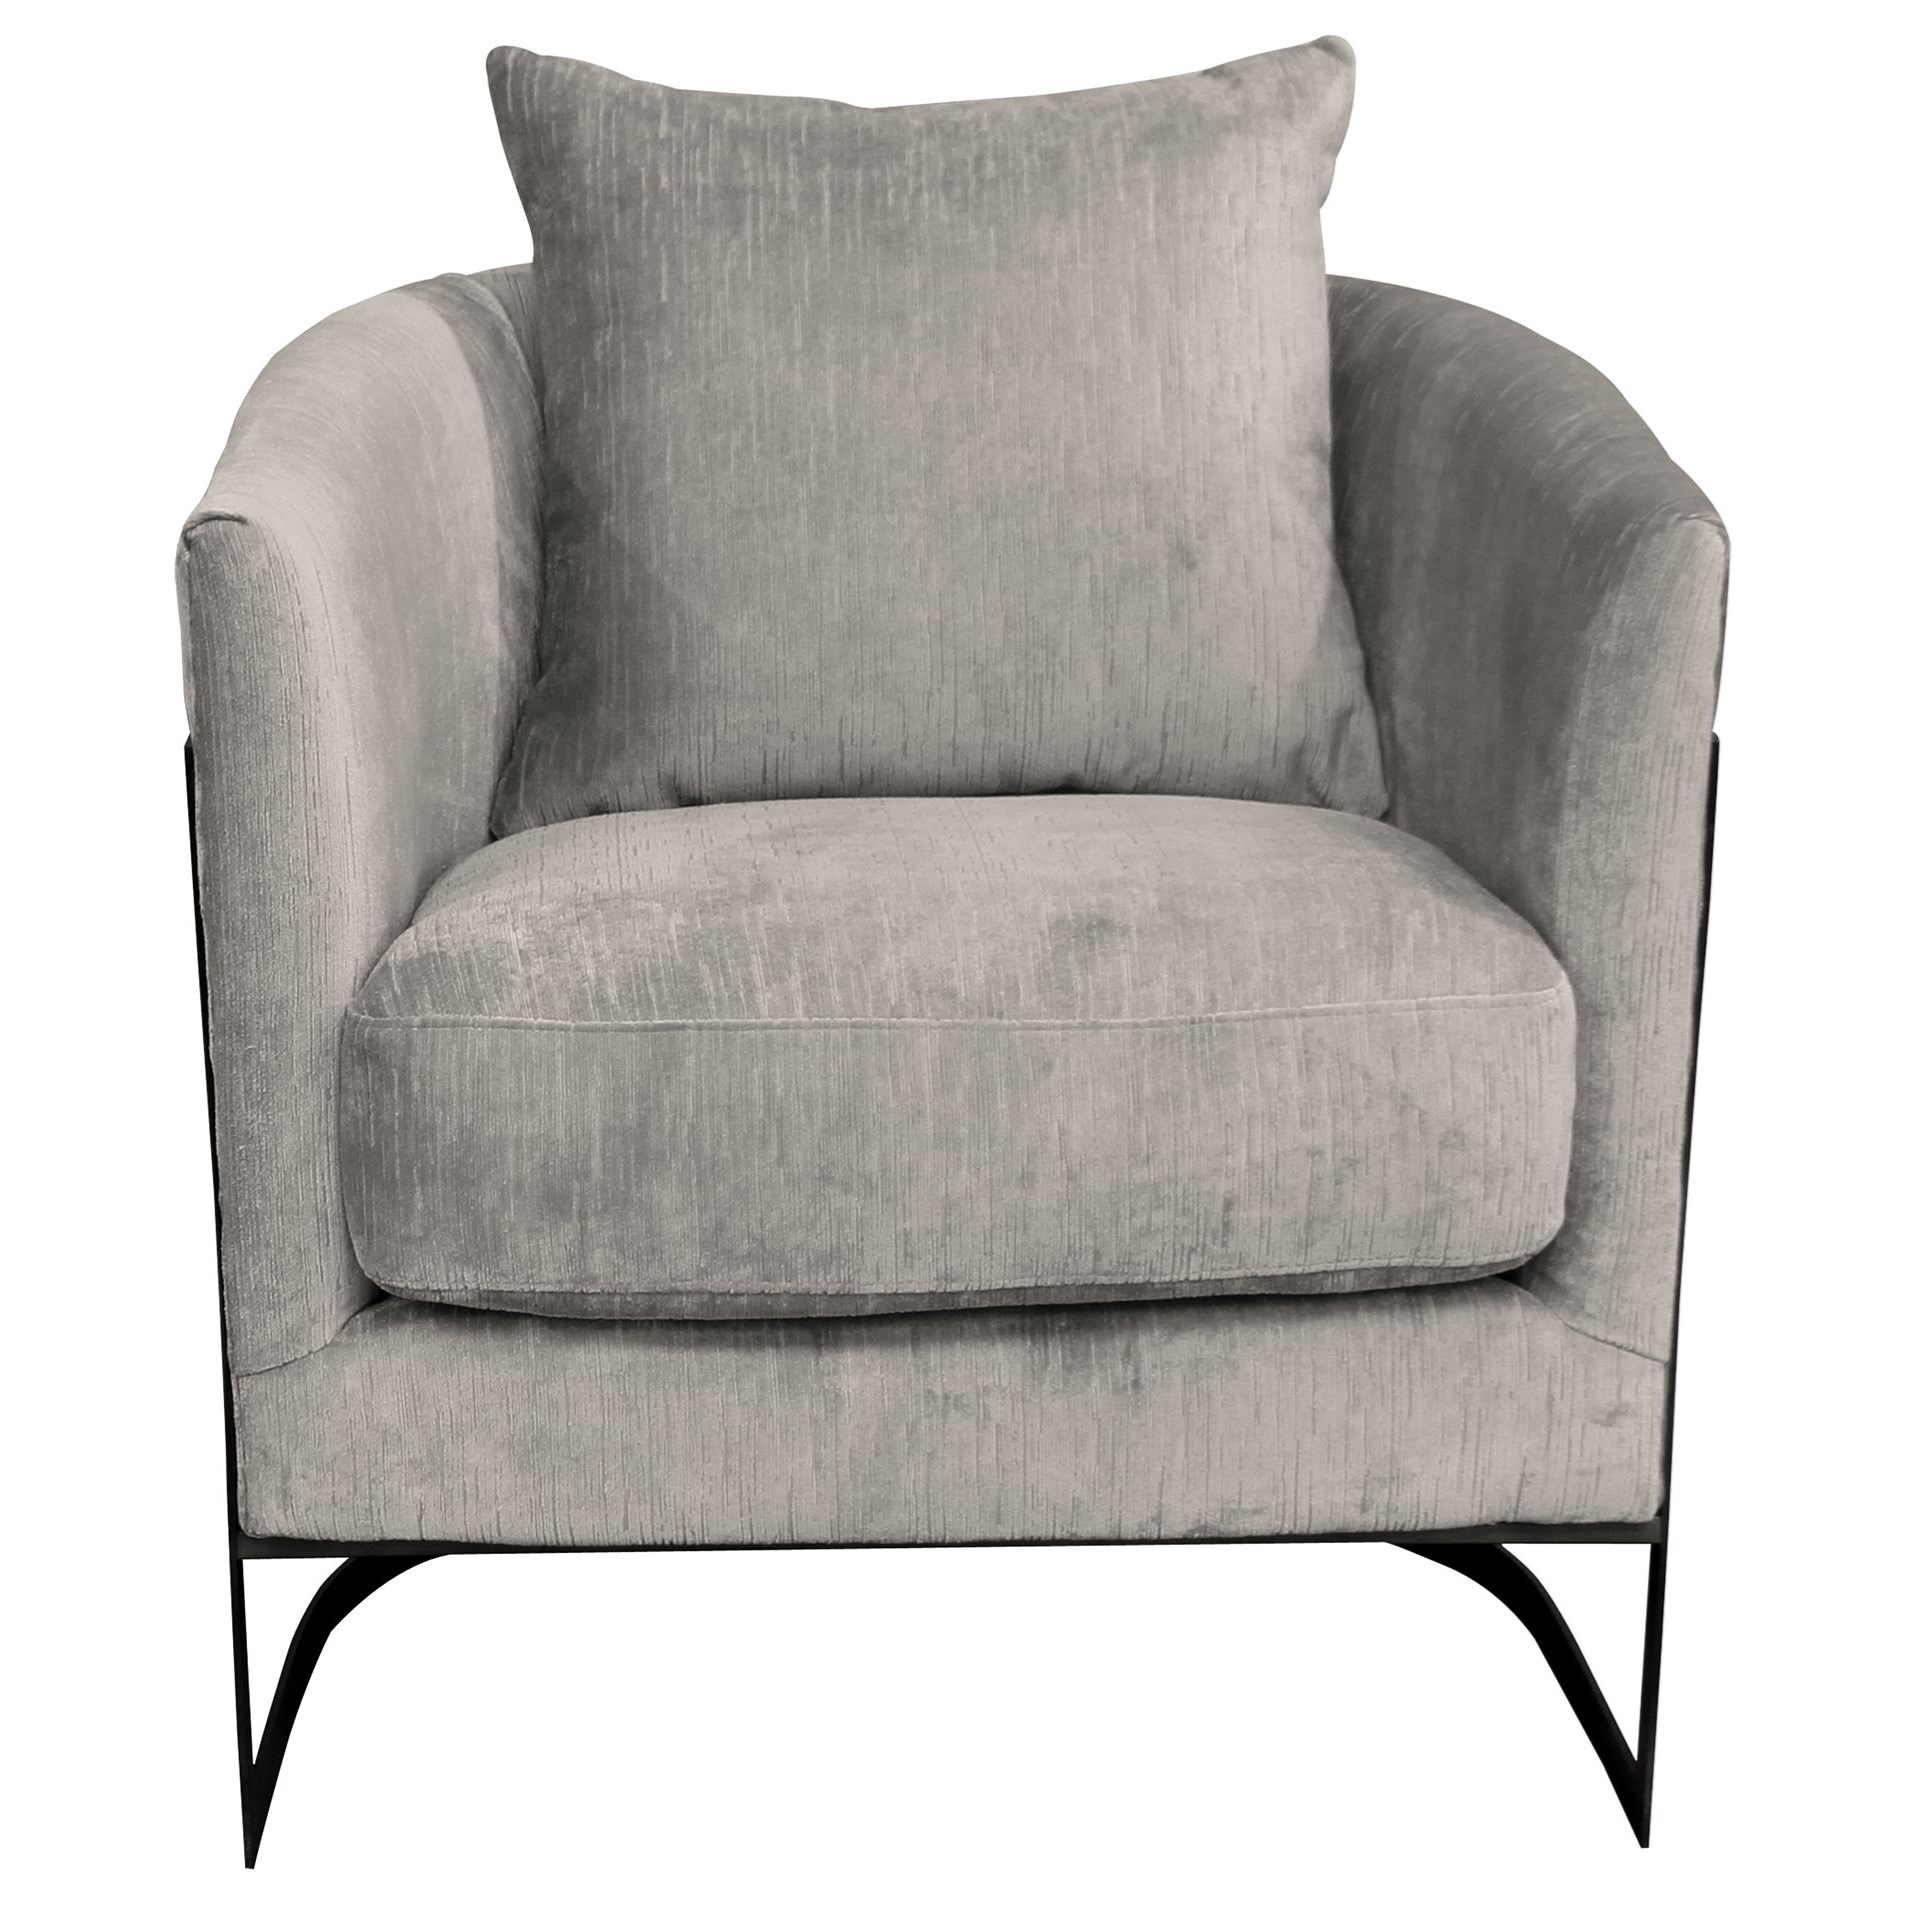 Swan Accent Chair by Armen Living at Michael Alan Furniture & Design